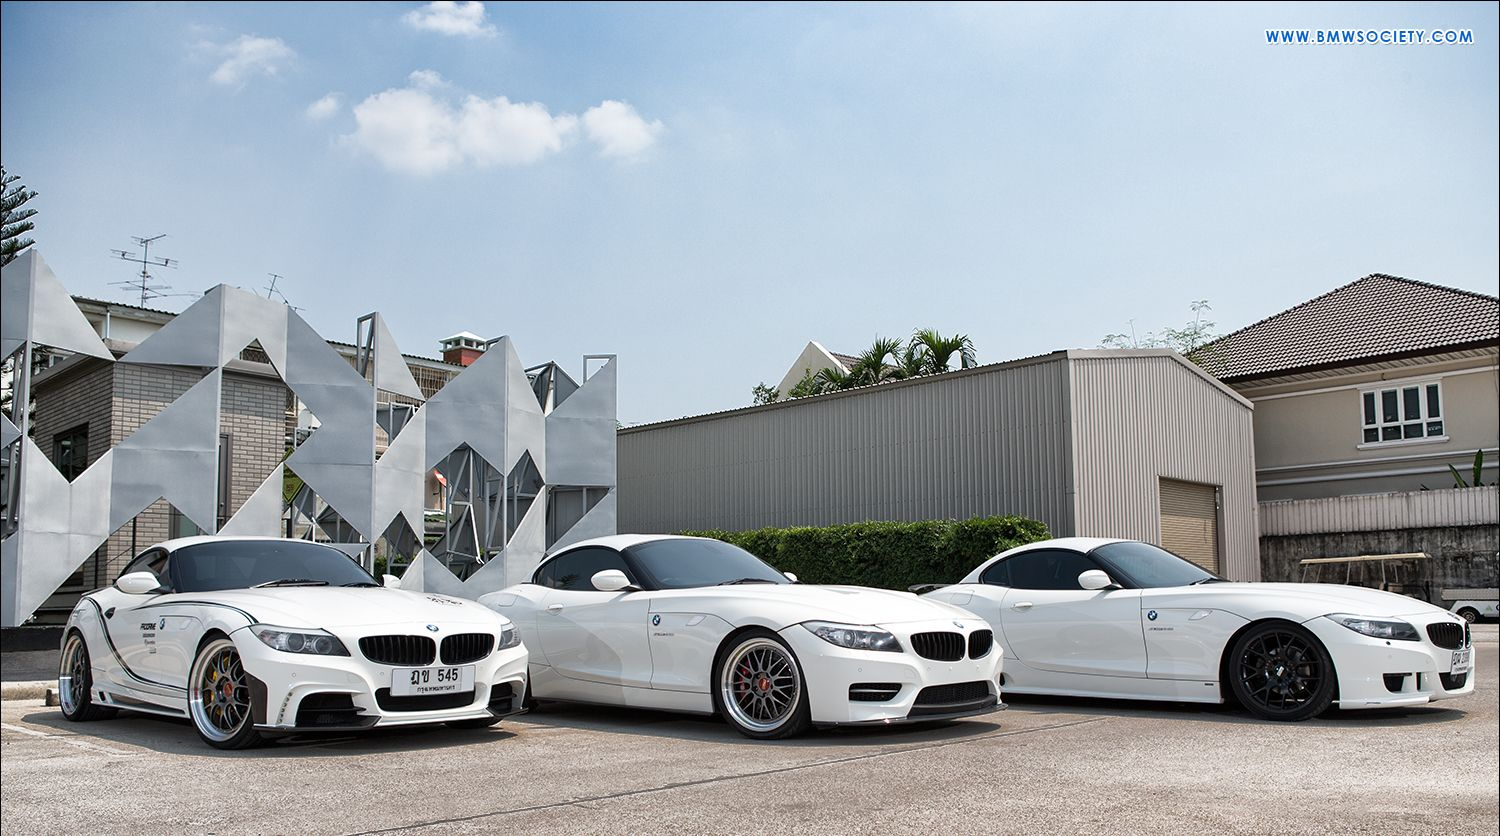 BMW Z4 E89 Dodge Charger Srt8, Bmw Z4, Import Cars, American Muscle Cars